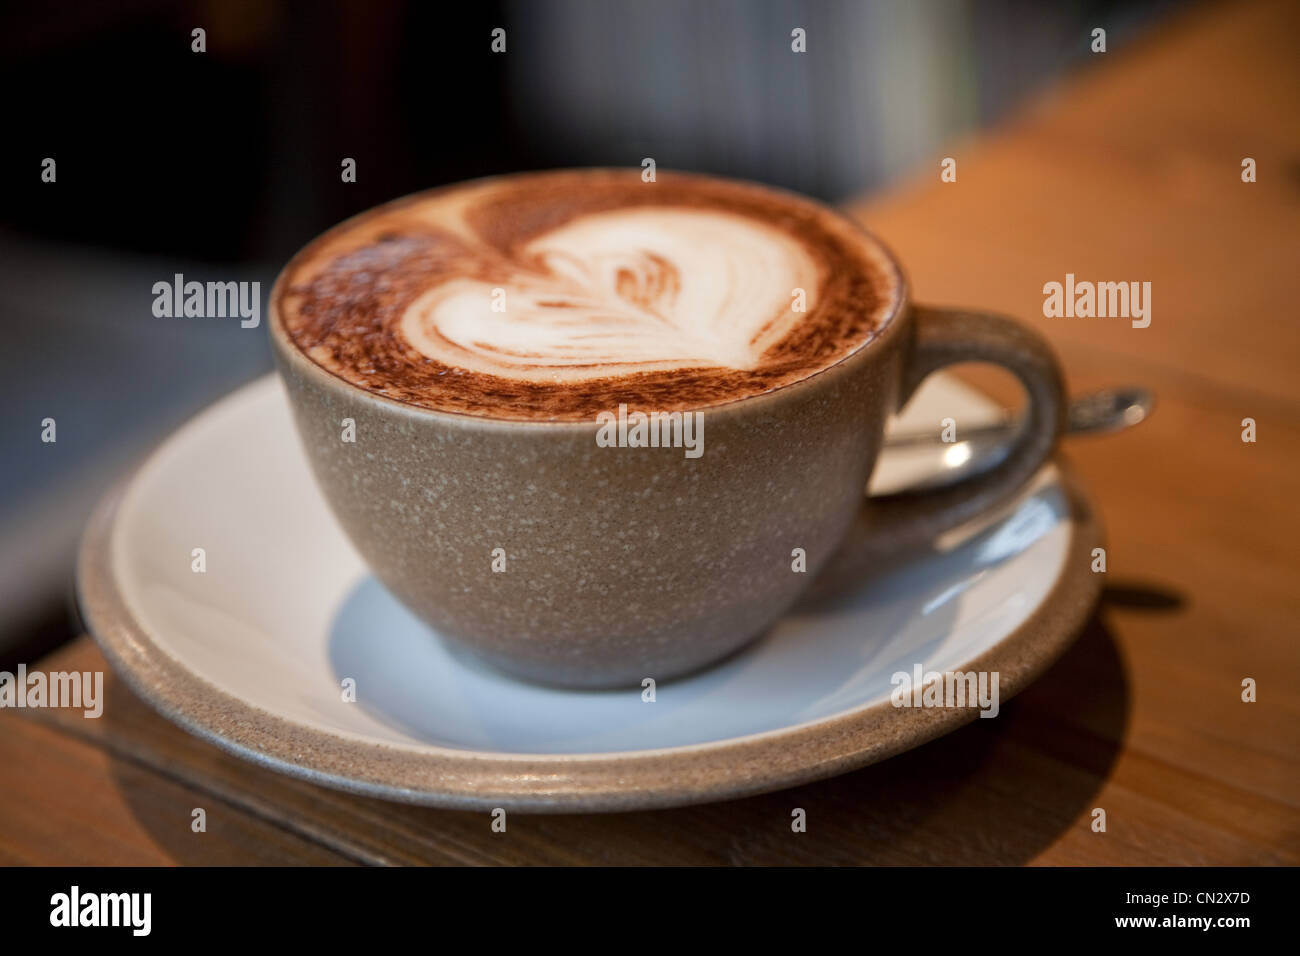 Cappuccino with heart shape in froth - Stock Image